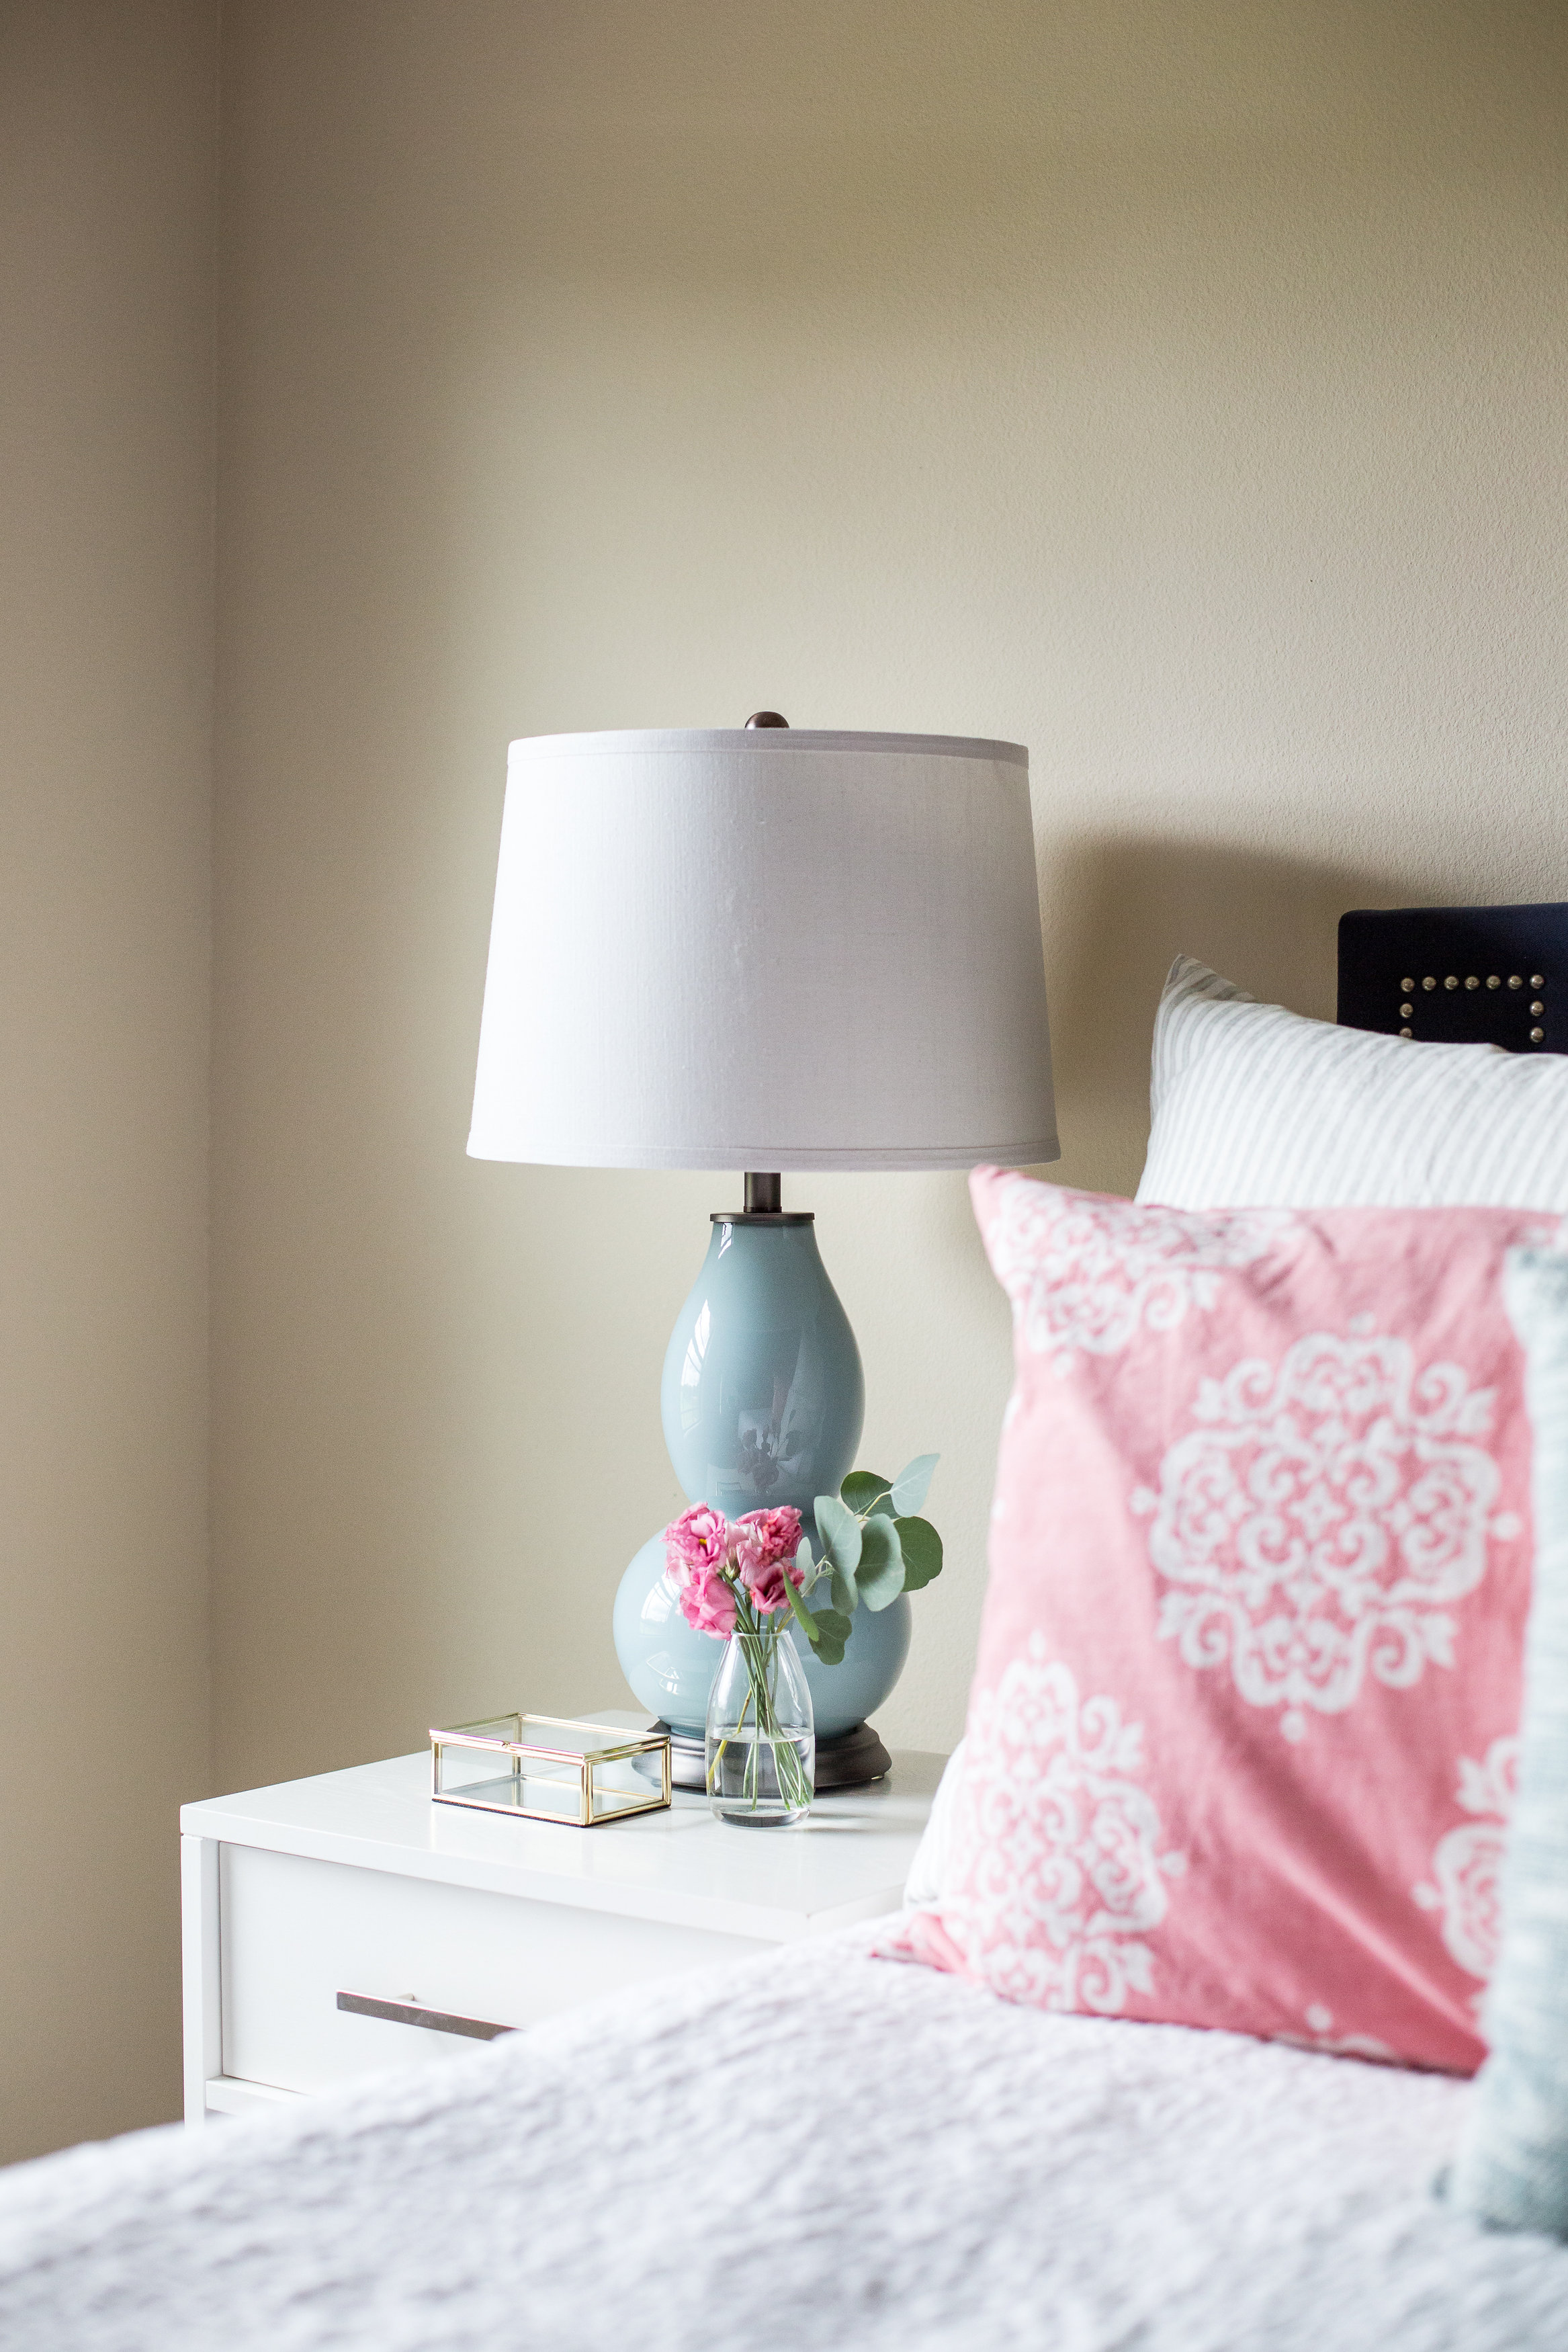 4 Tips For A Relaxing Bedroom And A Client Project